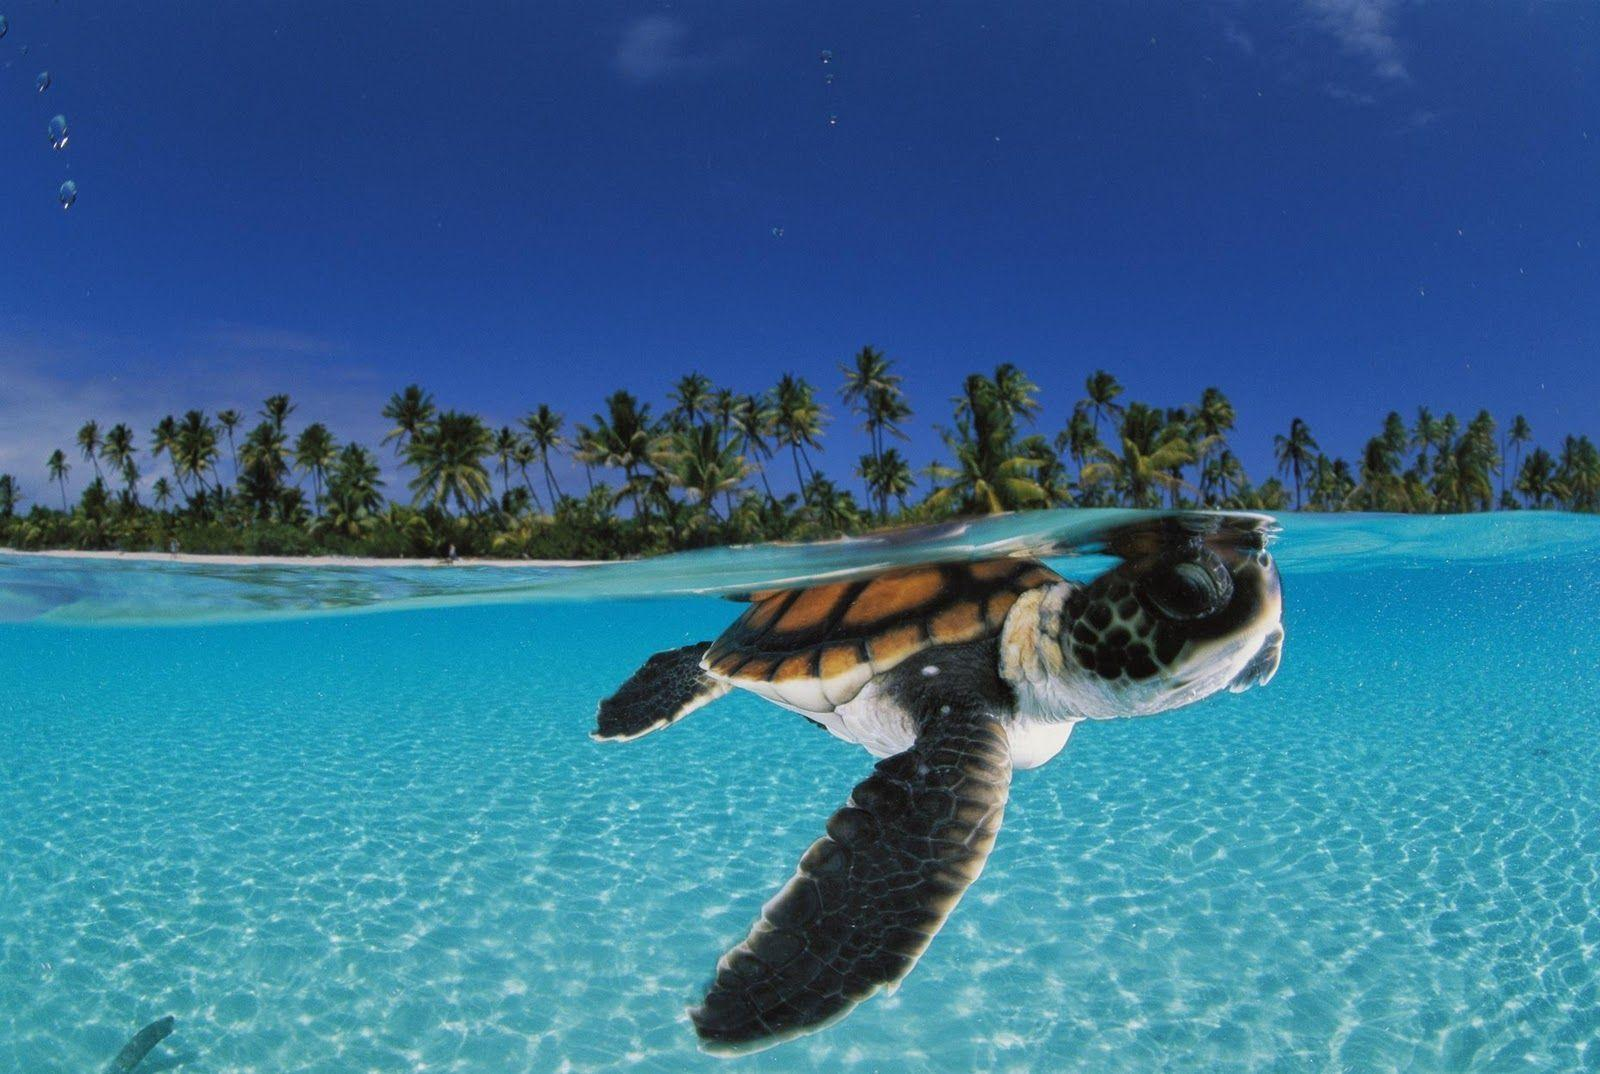 Baby Sea Turtles Backgrounds 1 HD Wallpapers